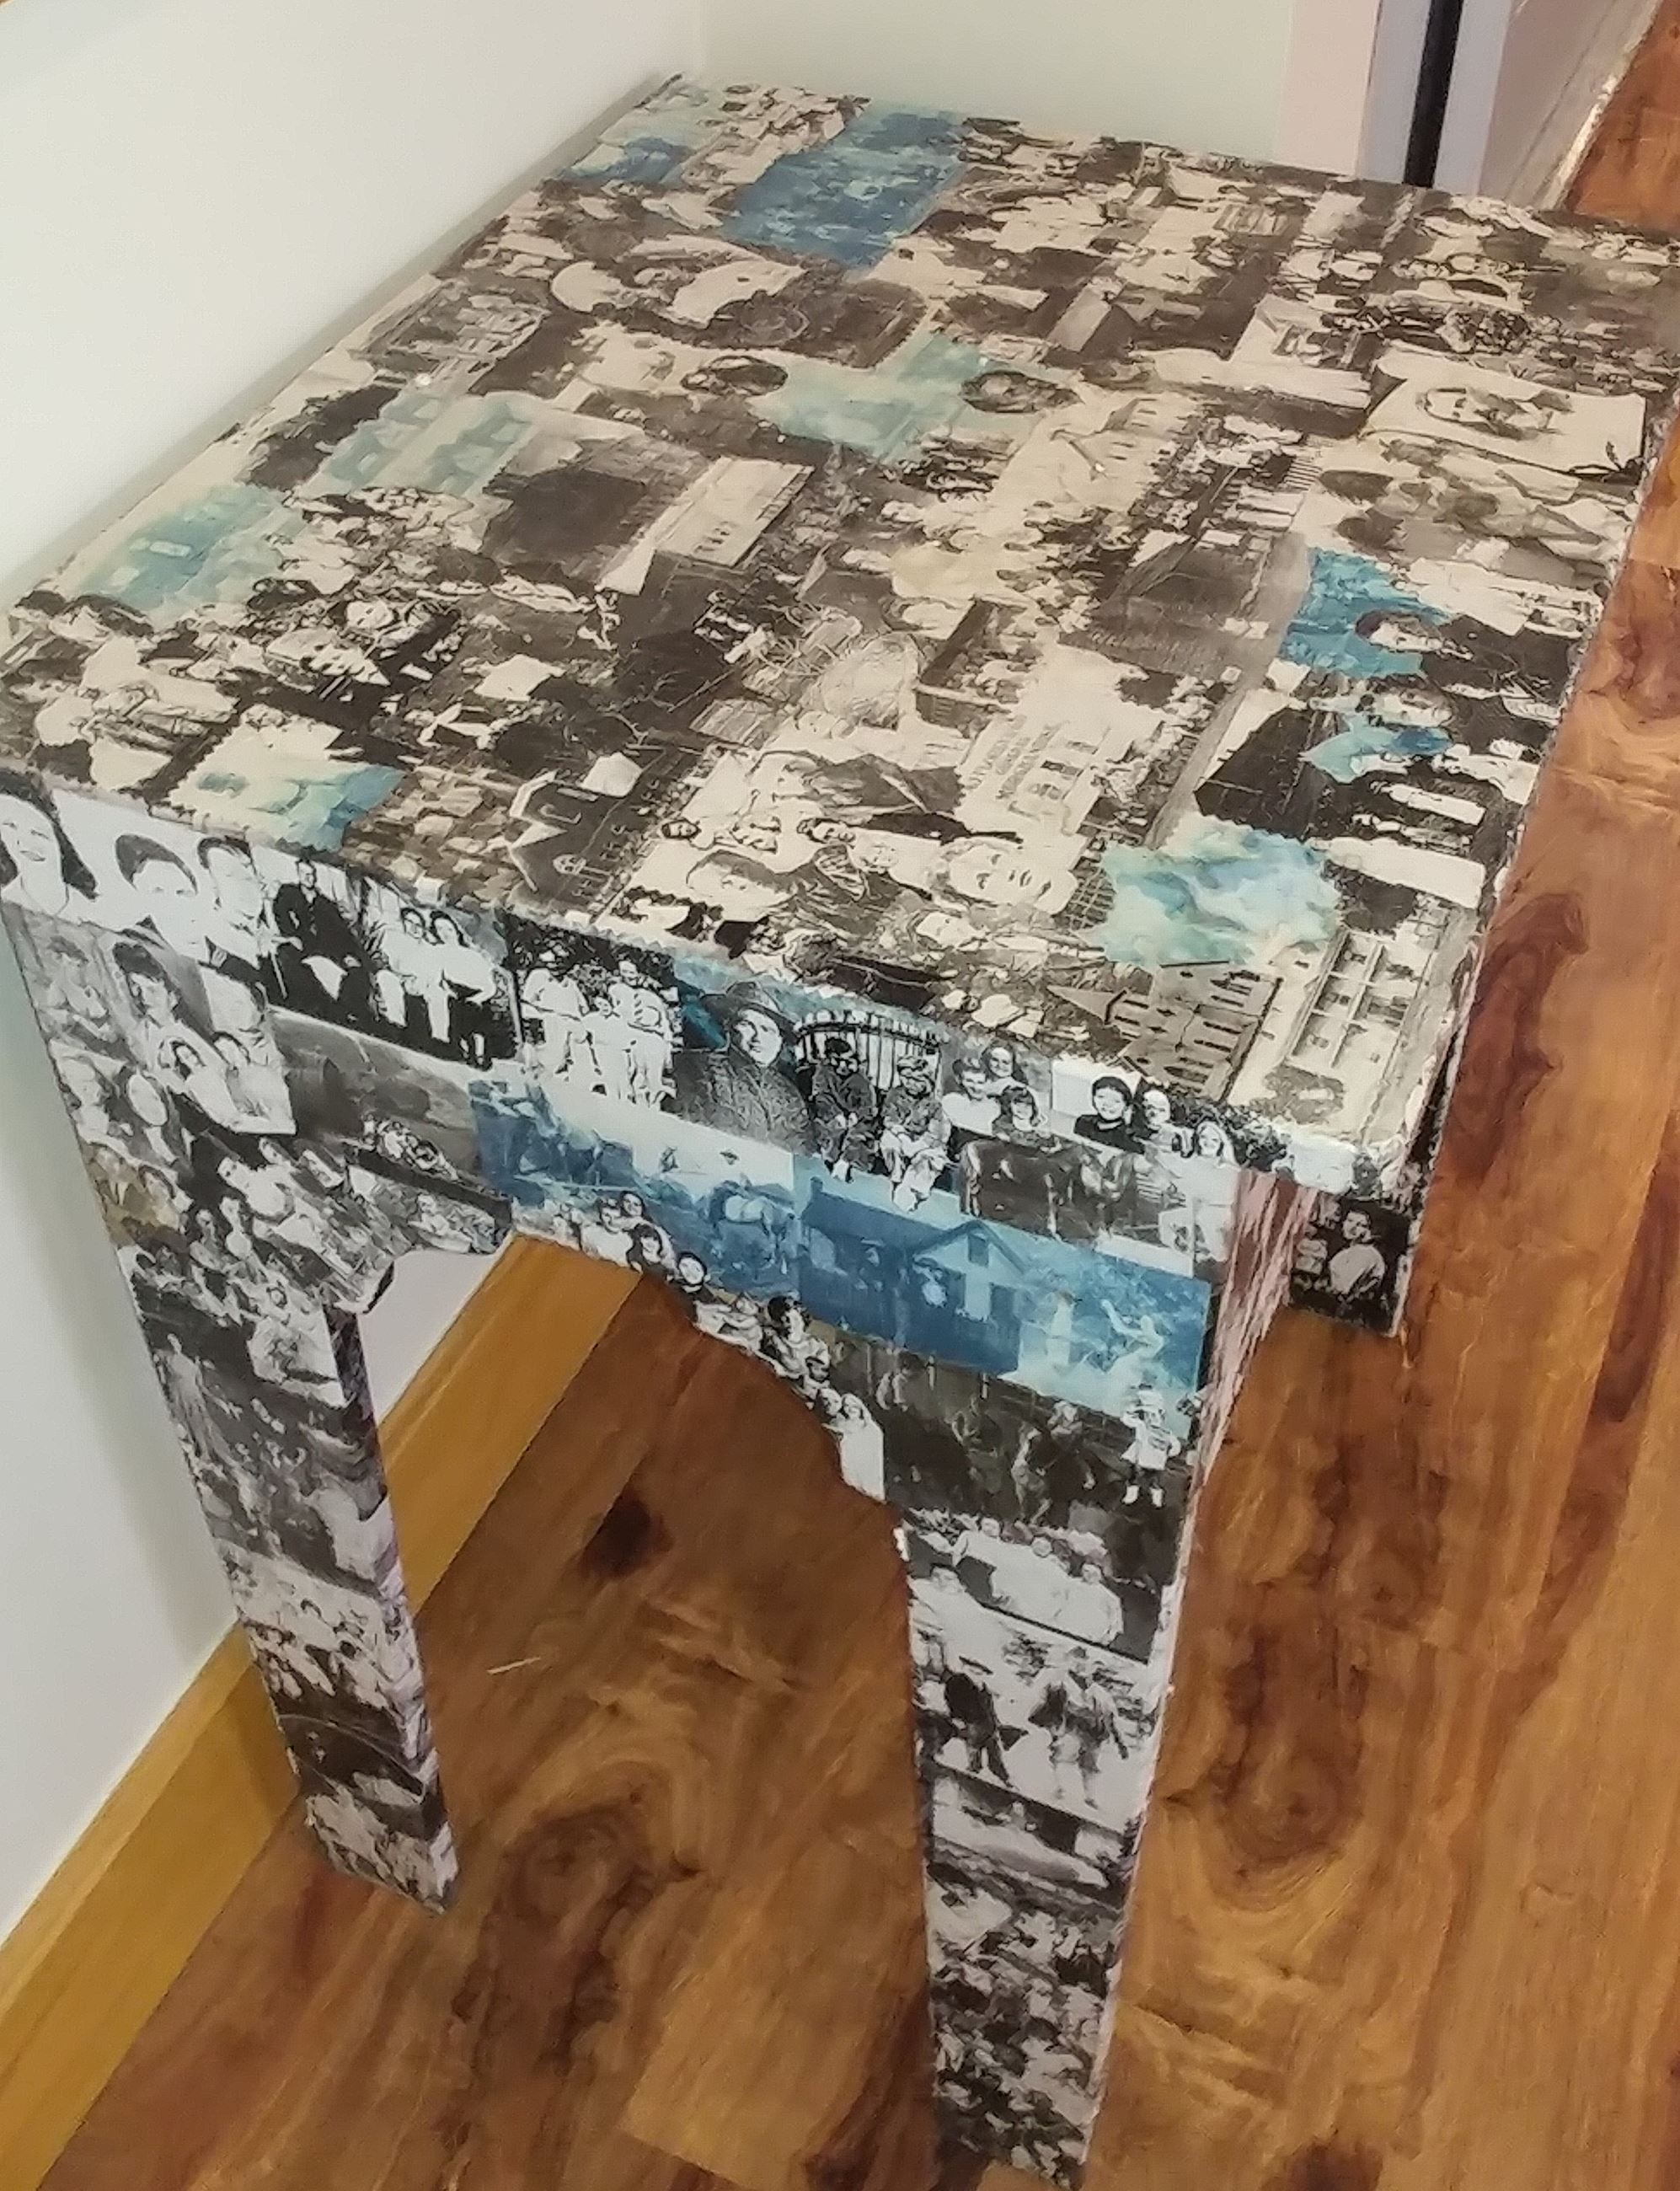 decoupage table with photos